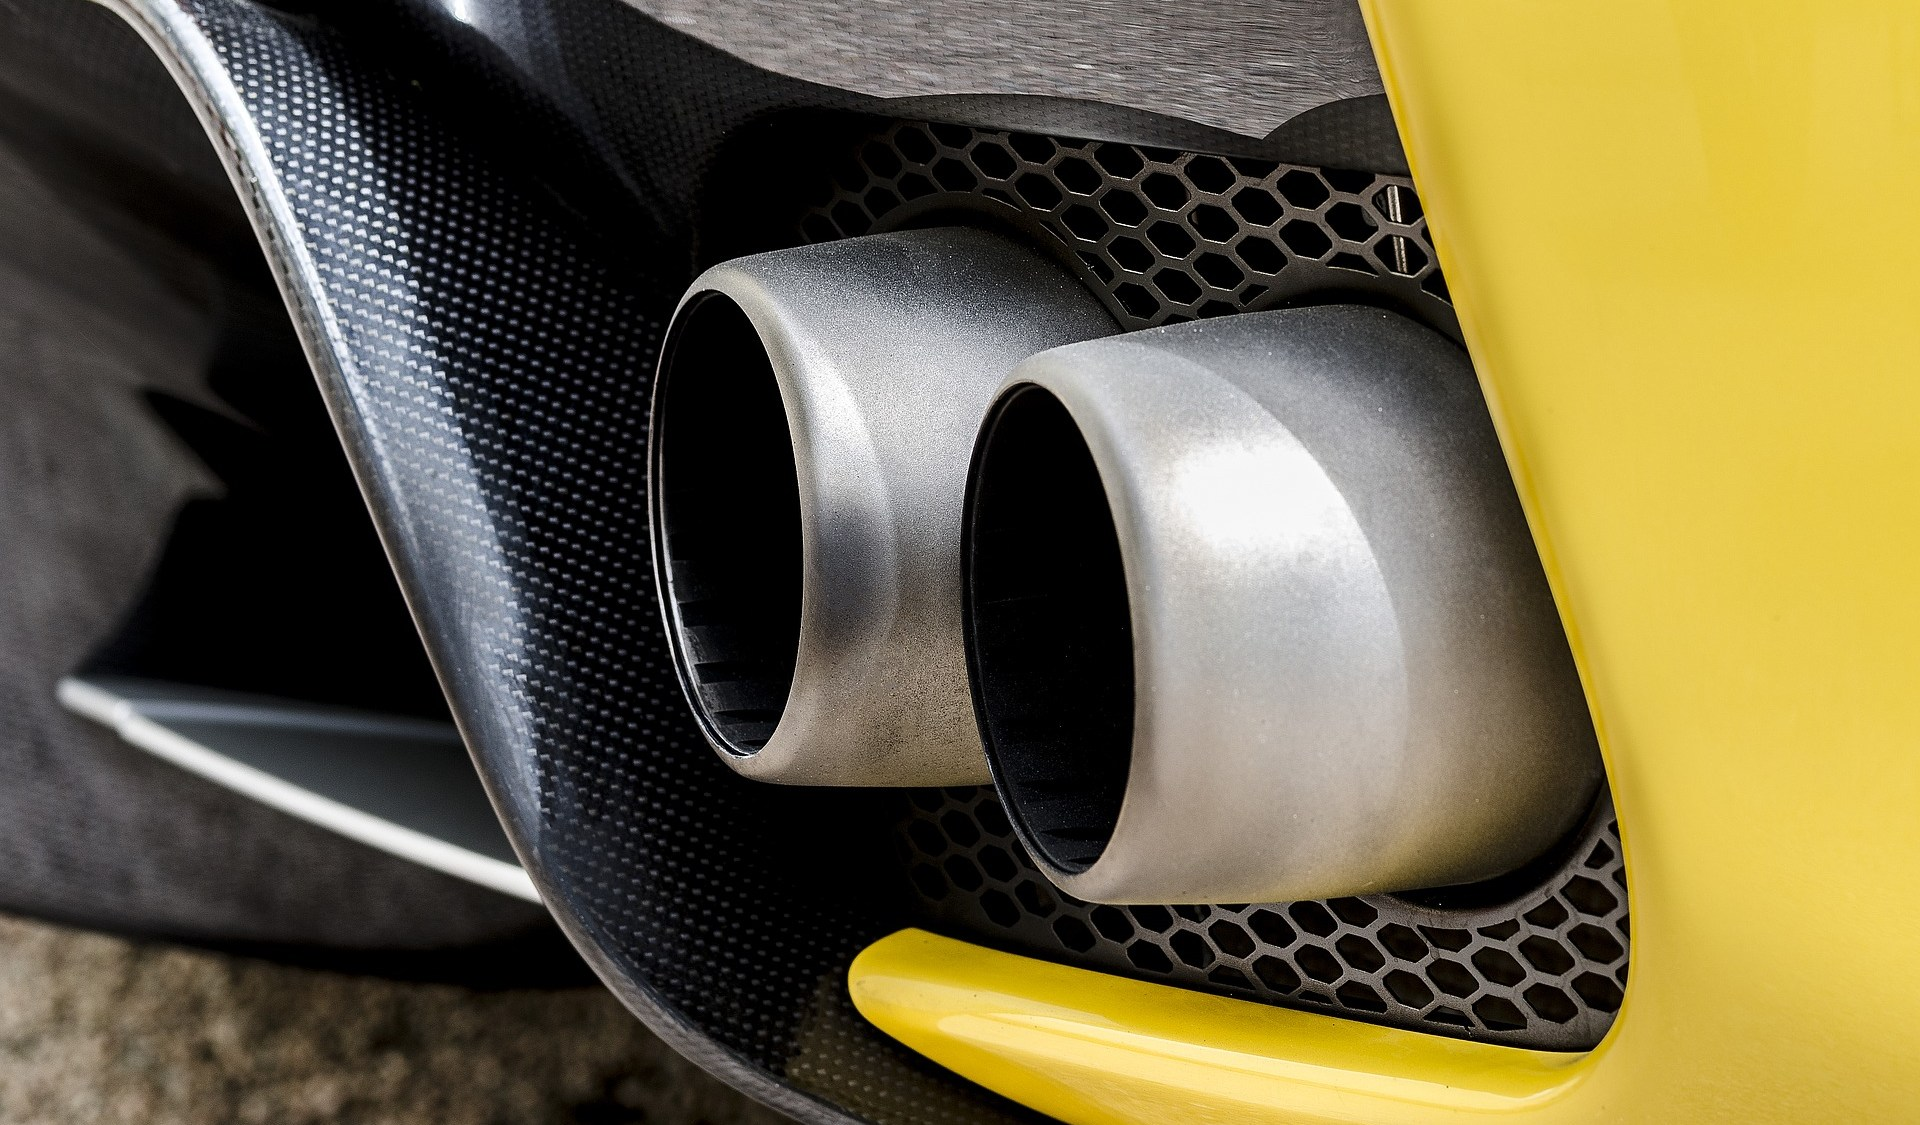 Using Ceramics in Exhaust Systems to Purify Emissions